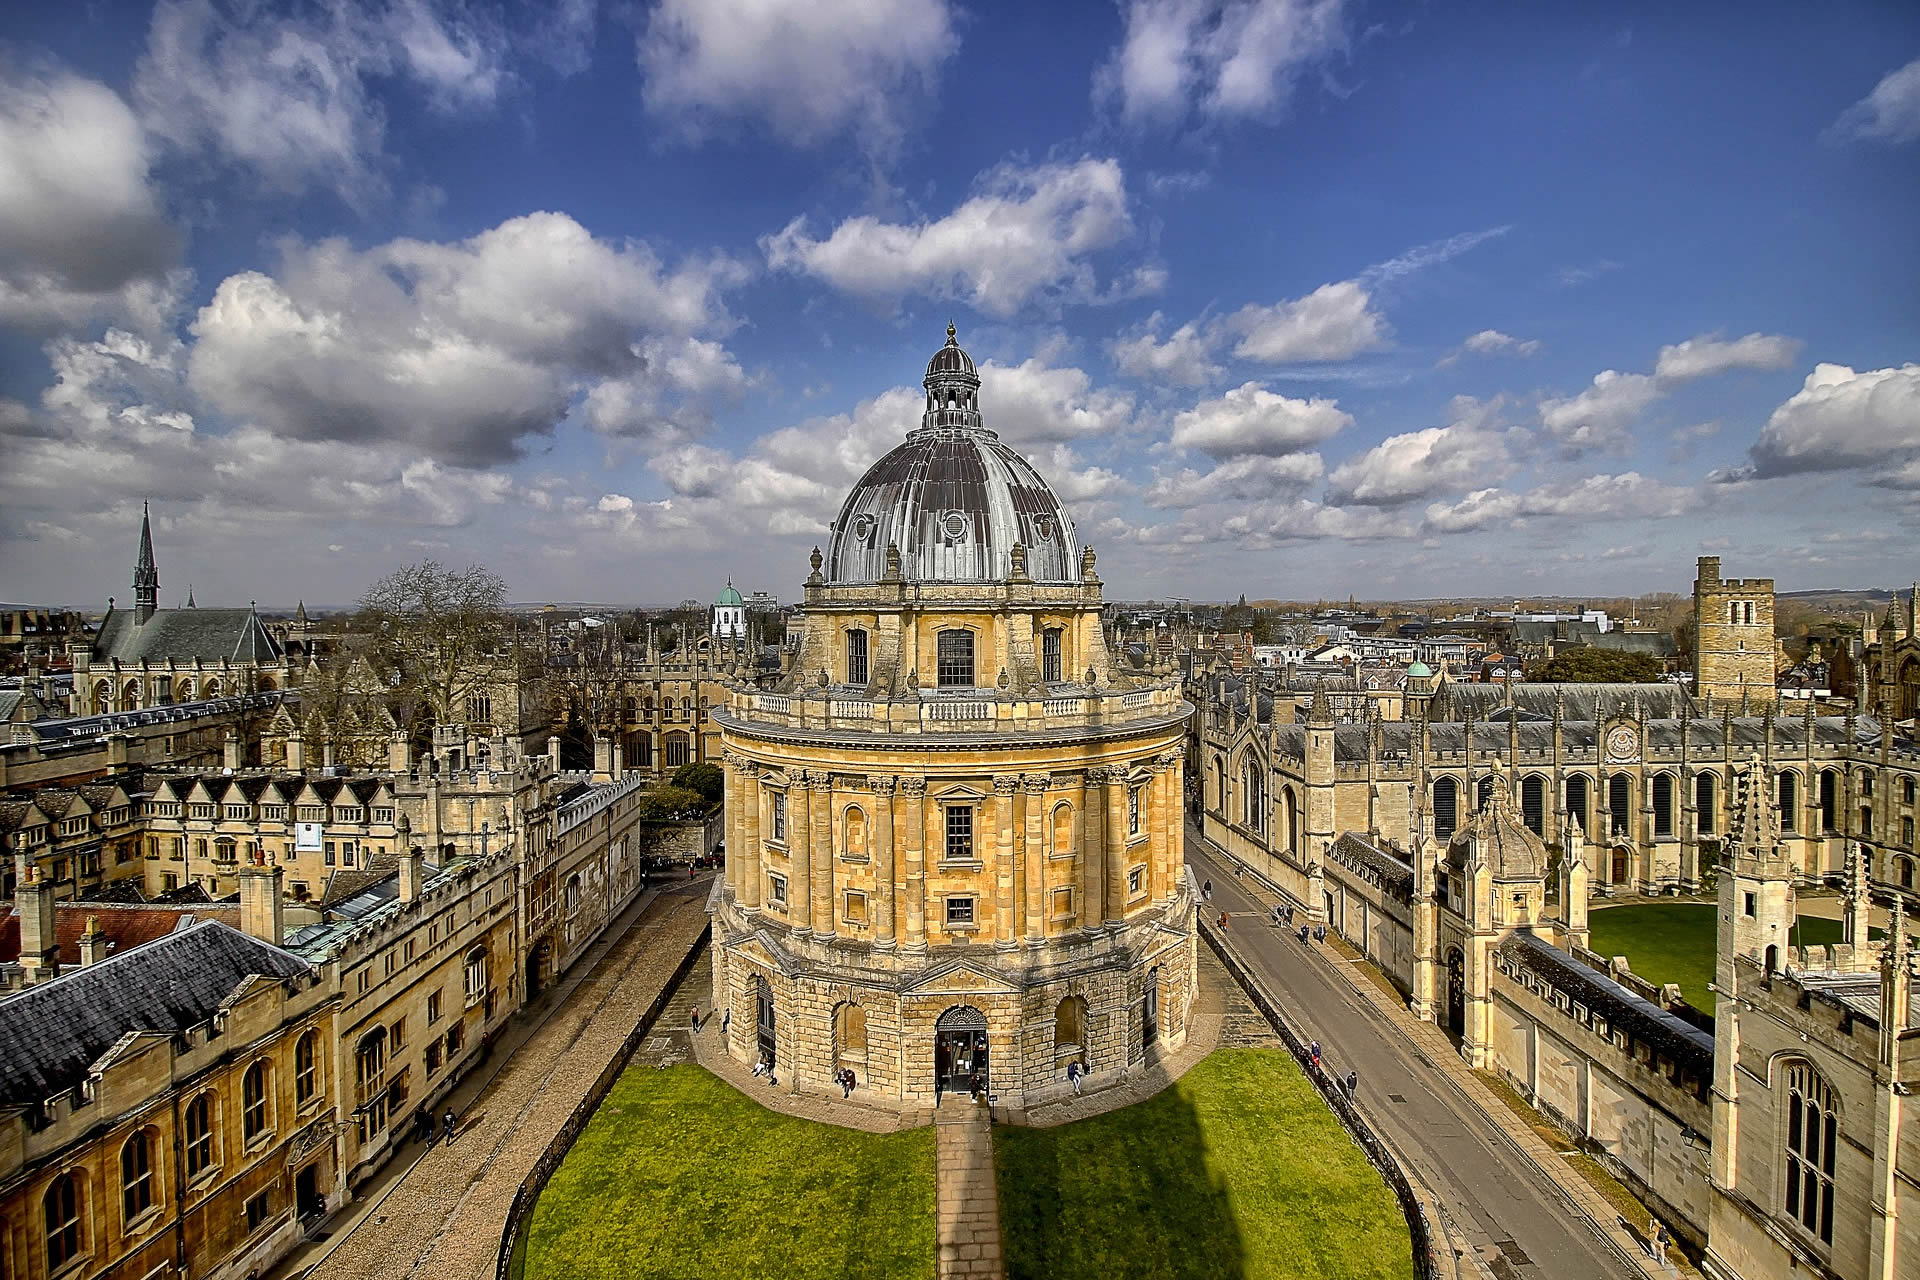 Radcliffe Library, Oxford University by Alfonso Cerezo